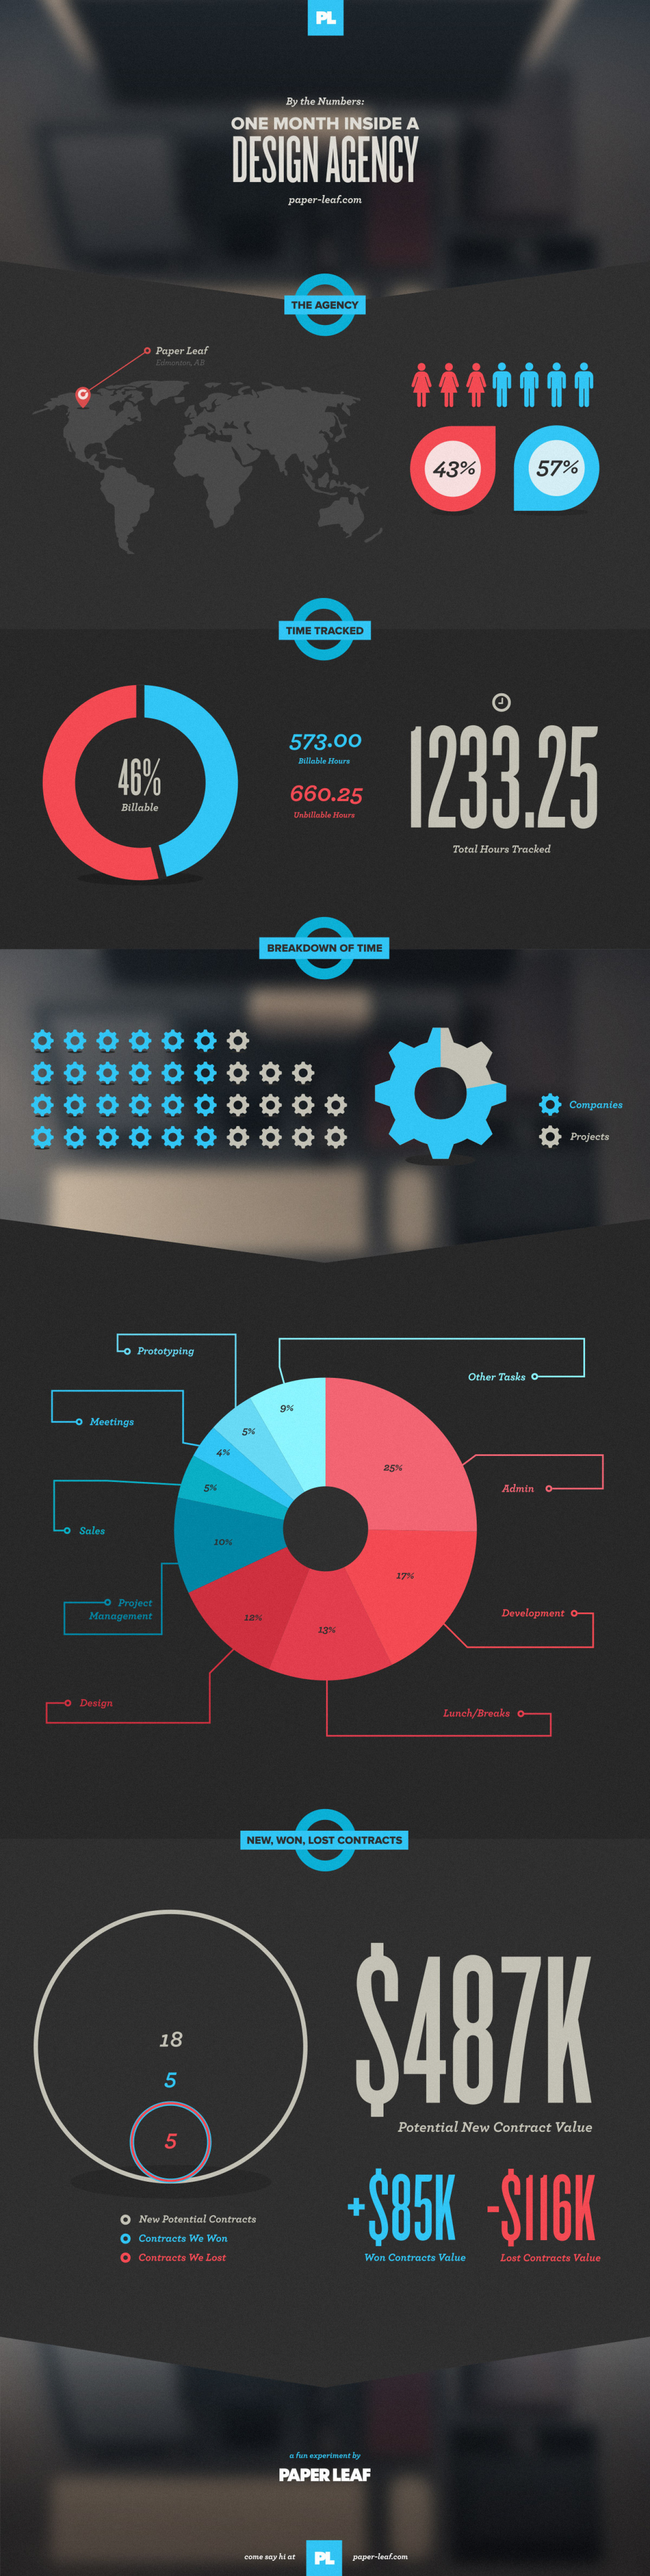 A Month in a Design Agency by the Numbers Infographic